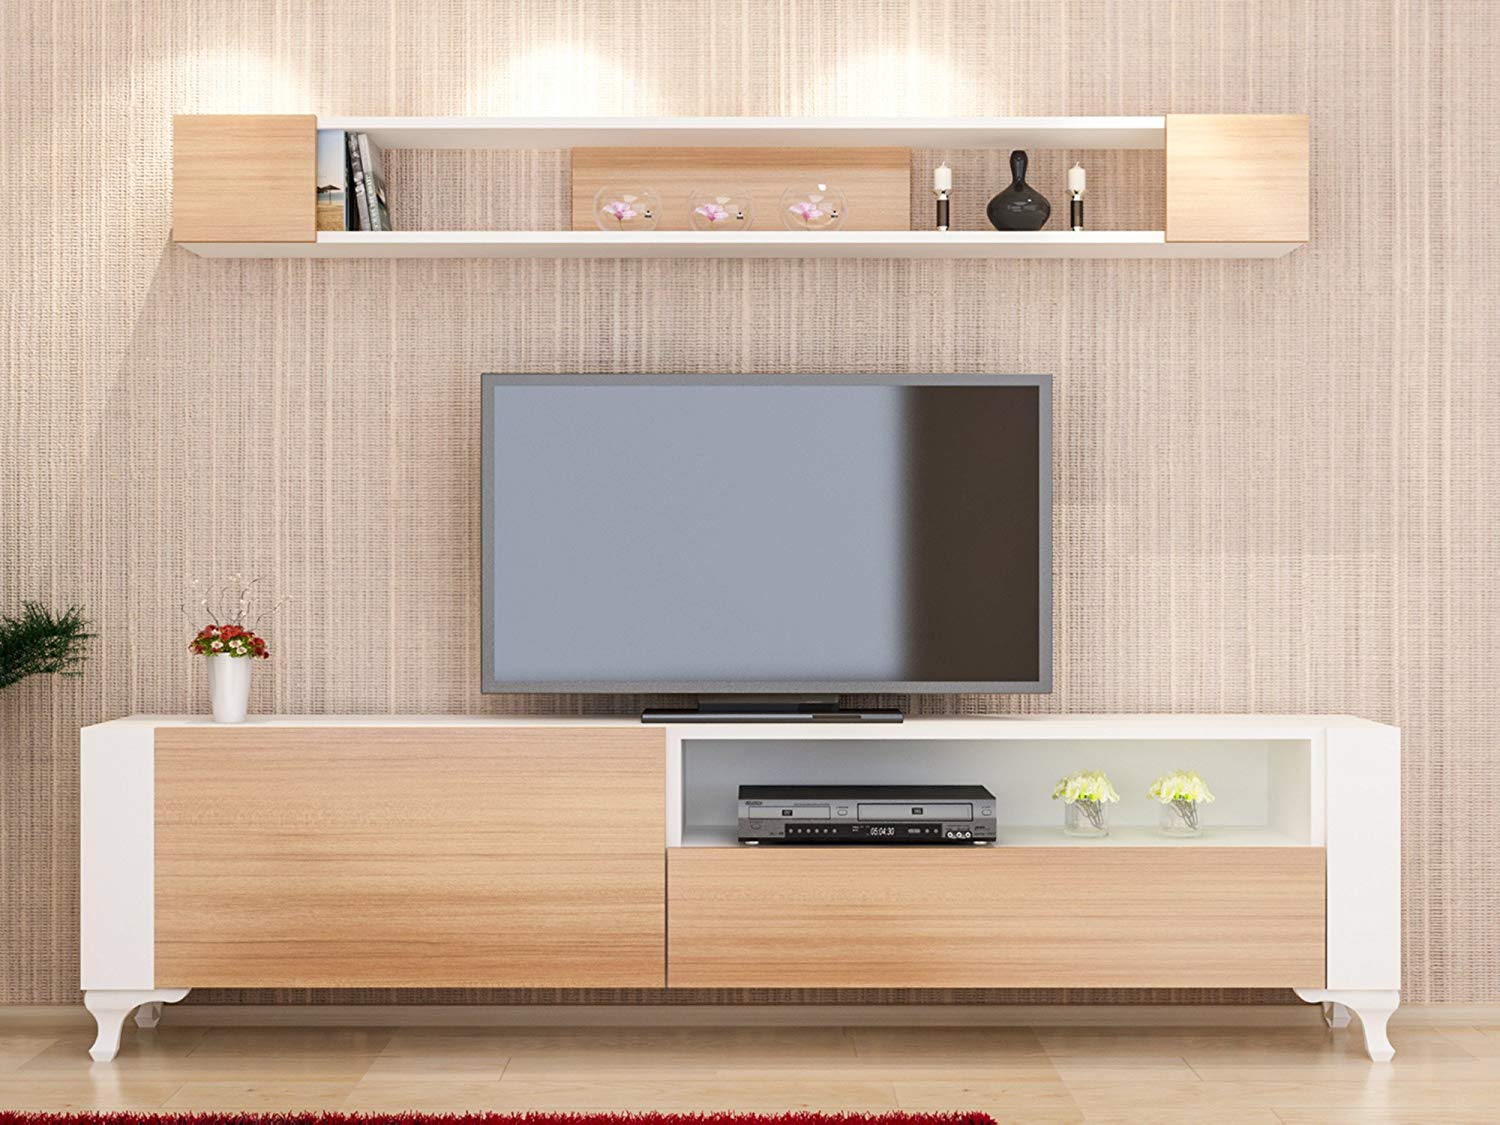 Get Quotations Lamodahome Tv Stand With Floating Shelf White And Light Wooden Unit Multi Functional